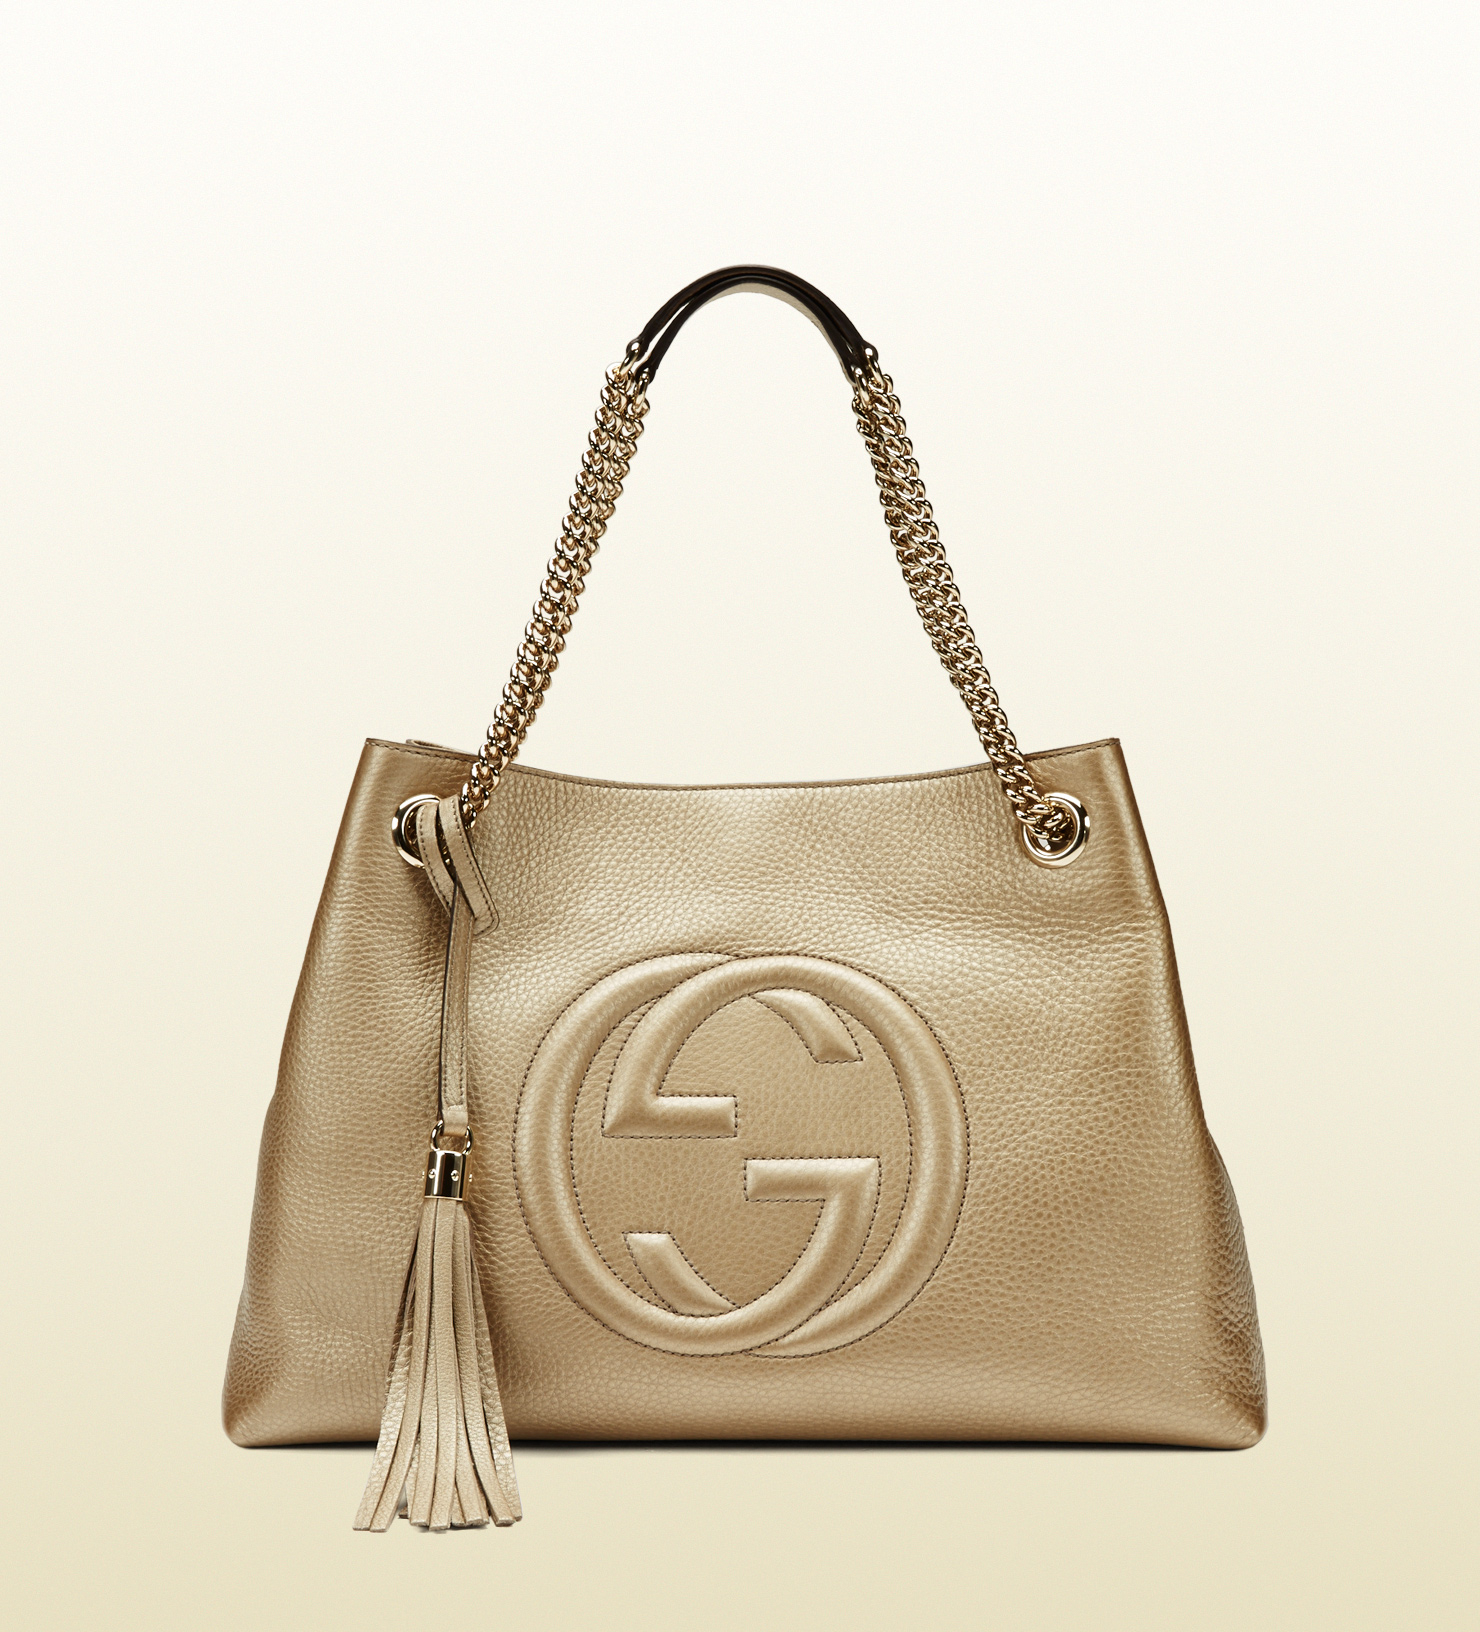 832fe806fe7a Lyst - Gucci Soho Metallic Leather Shoulder Bag in Natural